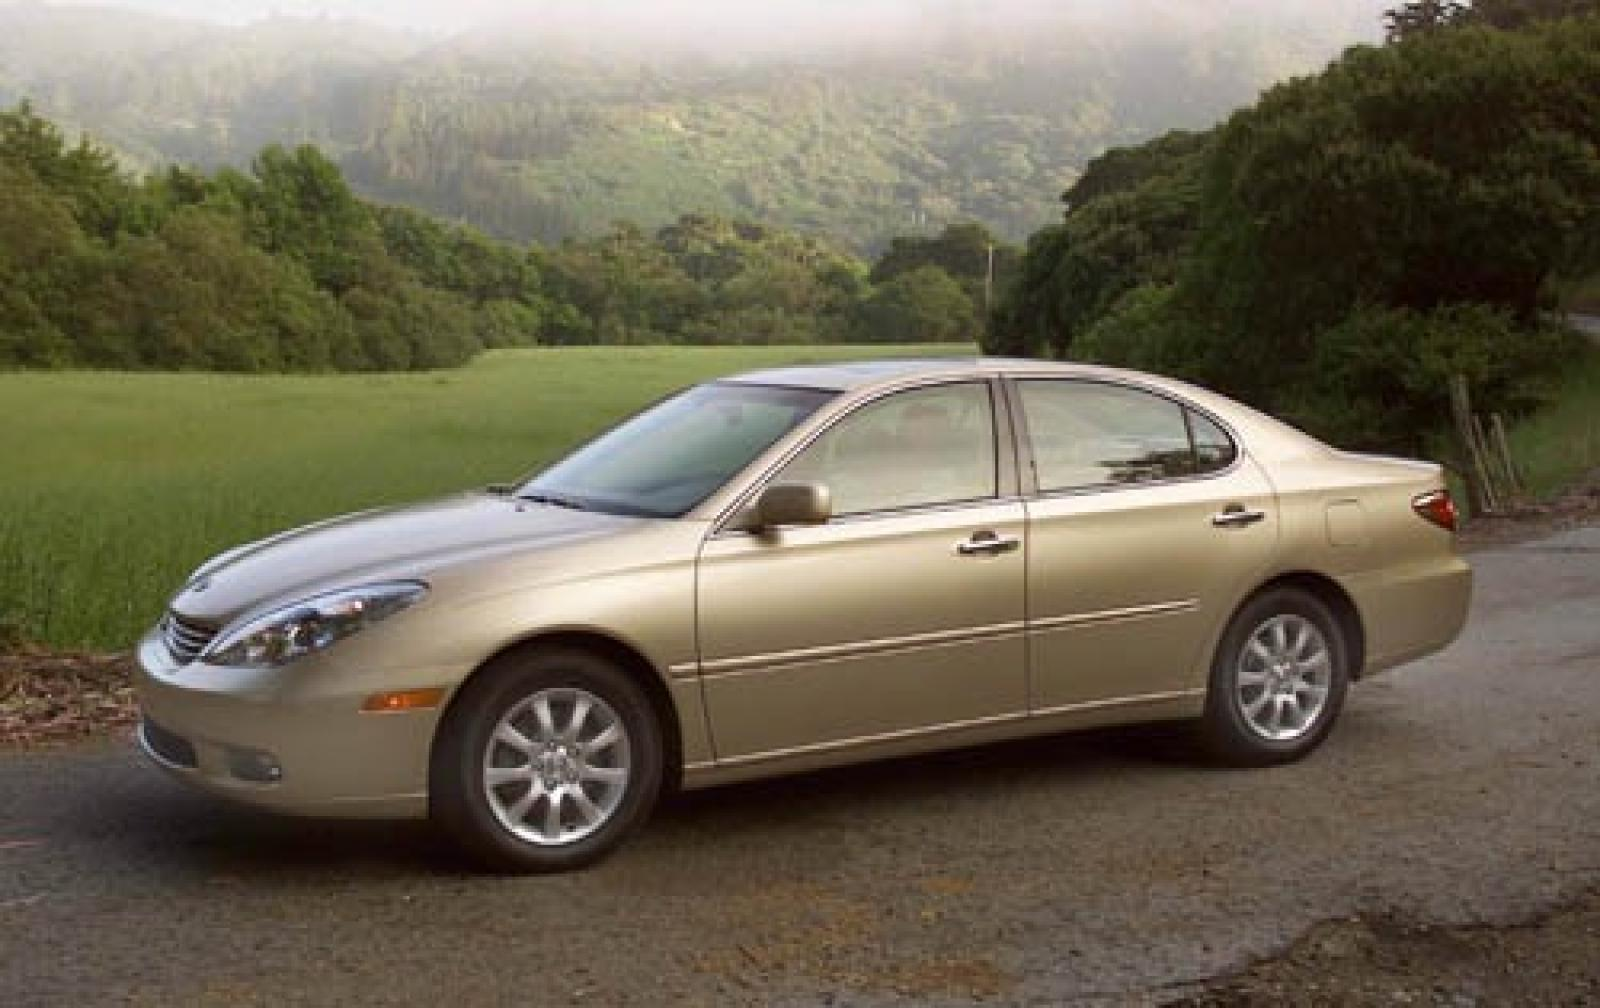 2004 lexus es 330 information and photos zombiedrive. Black Bedroom Furniture Sets. Home Design Ideas